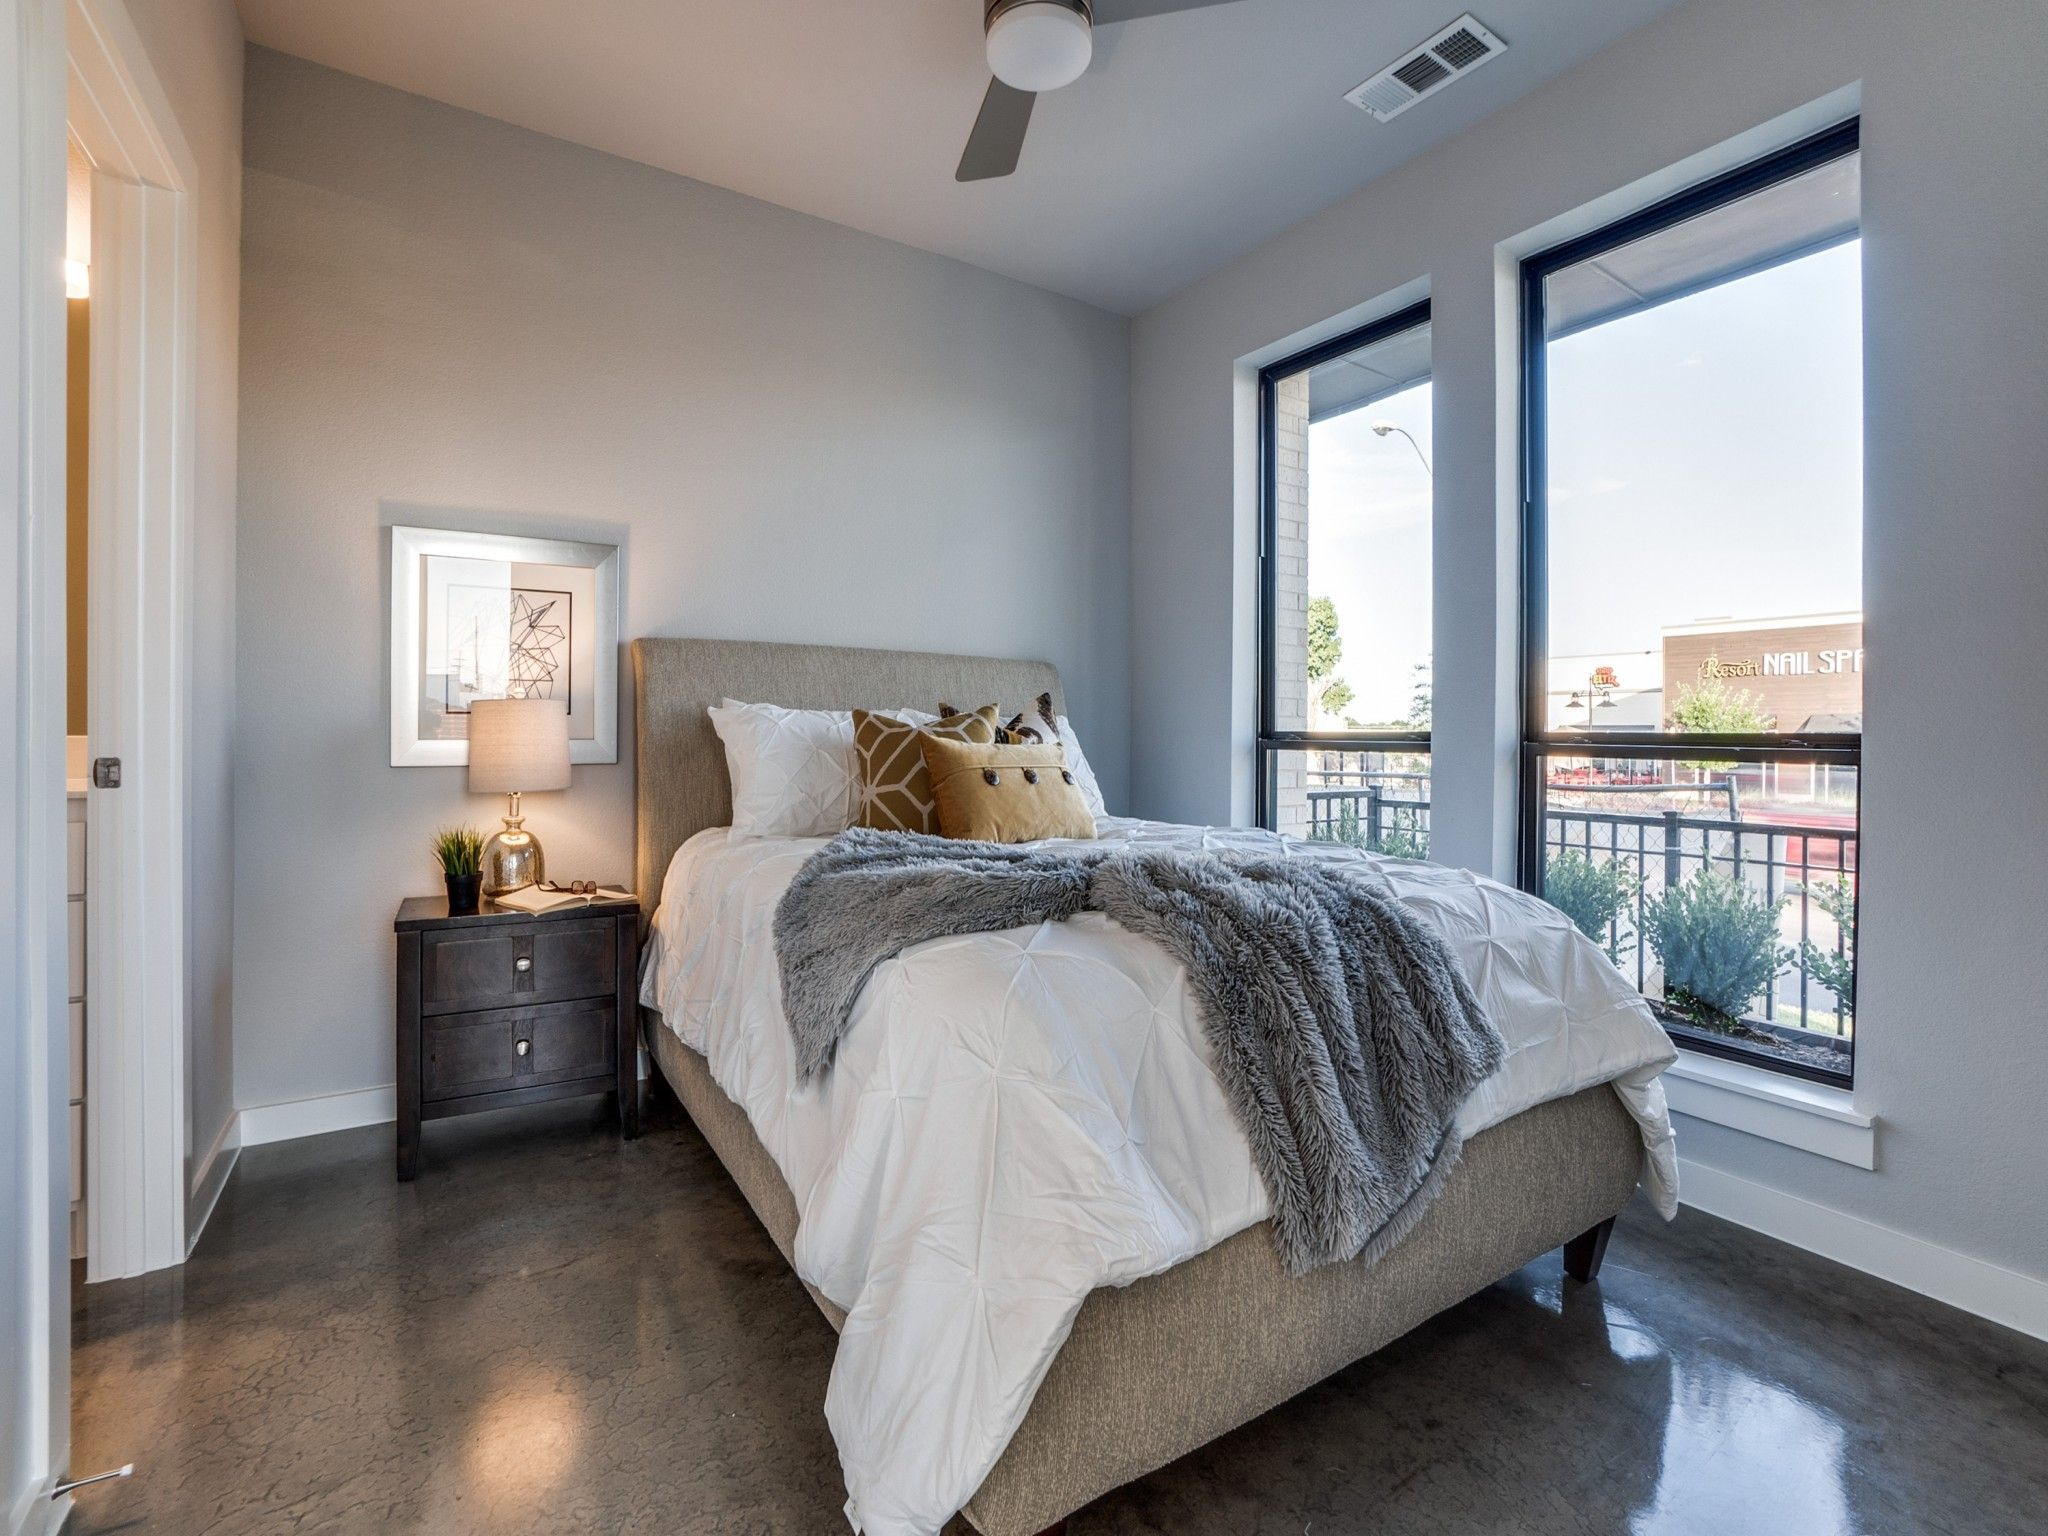 Bedroom featured in the Laurel By Centre Living Homes in Dallas, TX